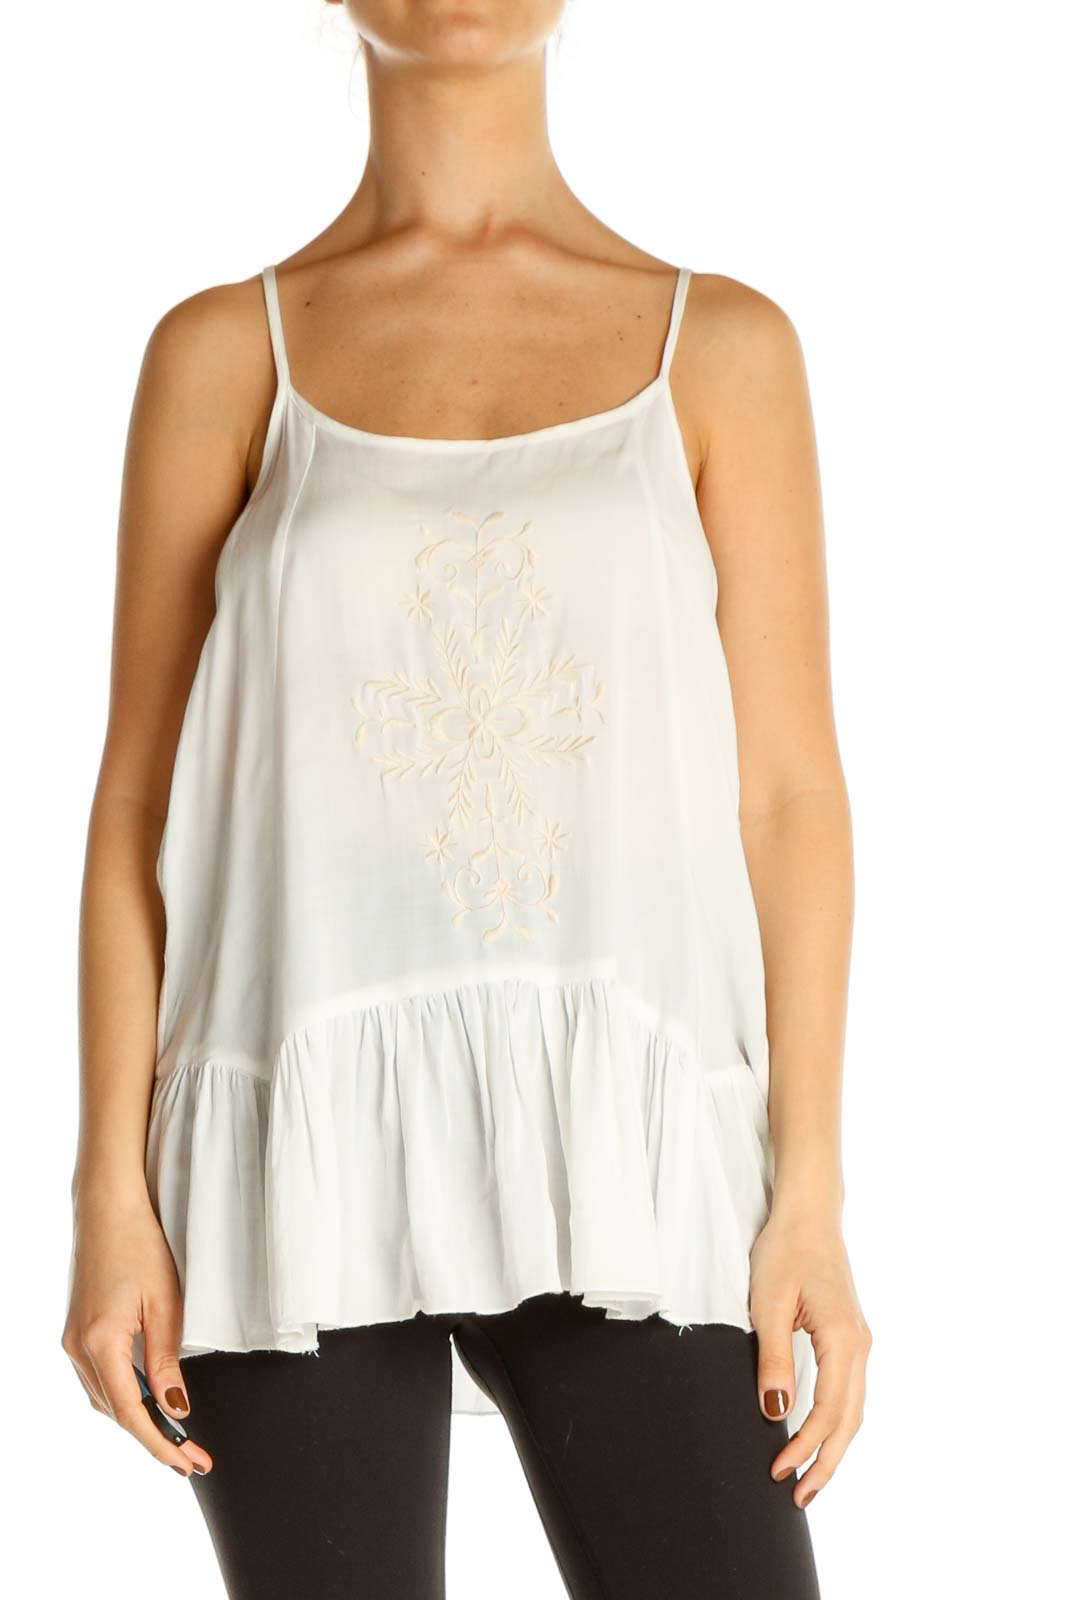 White Lace Chic Tank Top Front